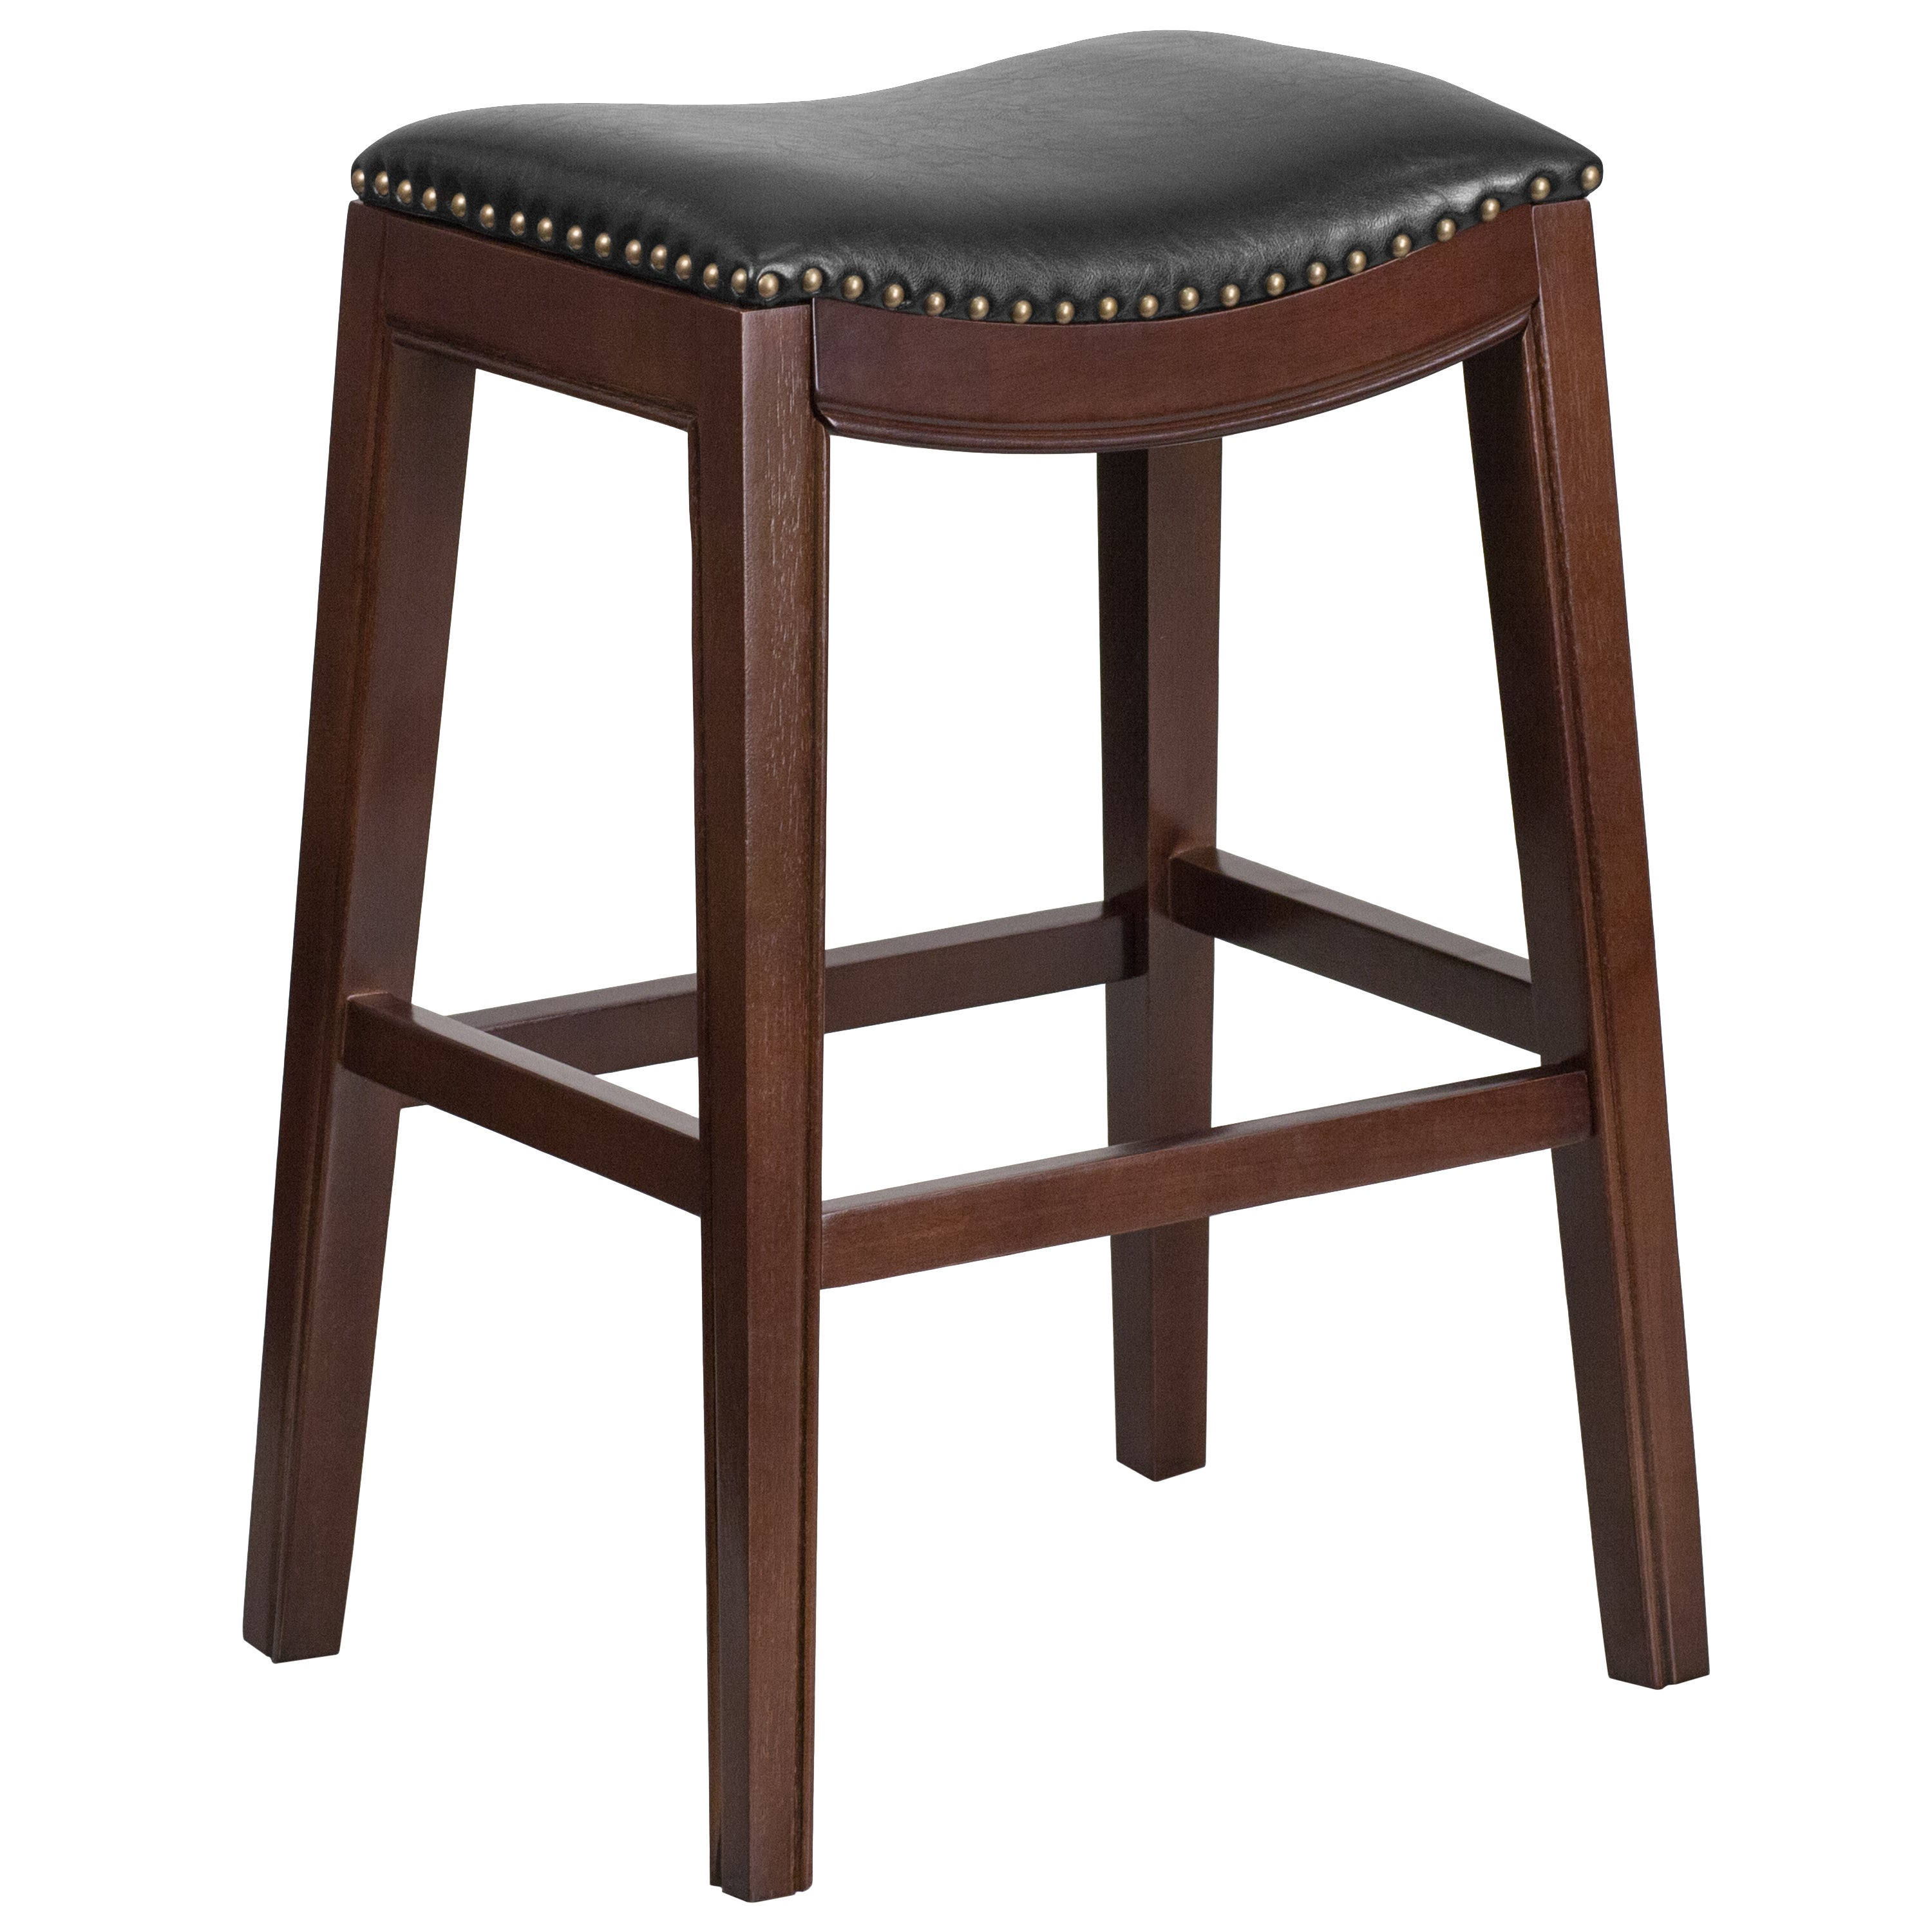 Shop Copper Grove Blackwater 30 Inch High Backless Wood Barstool